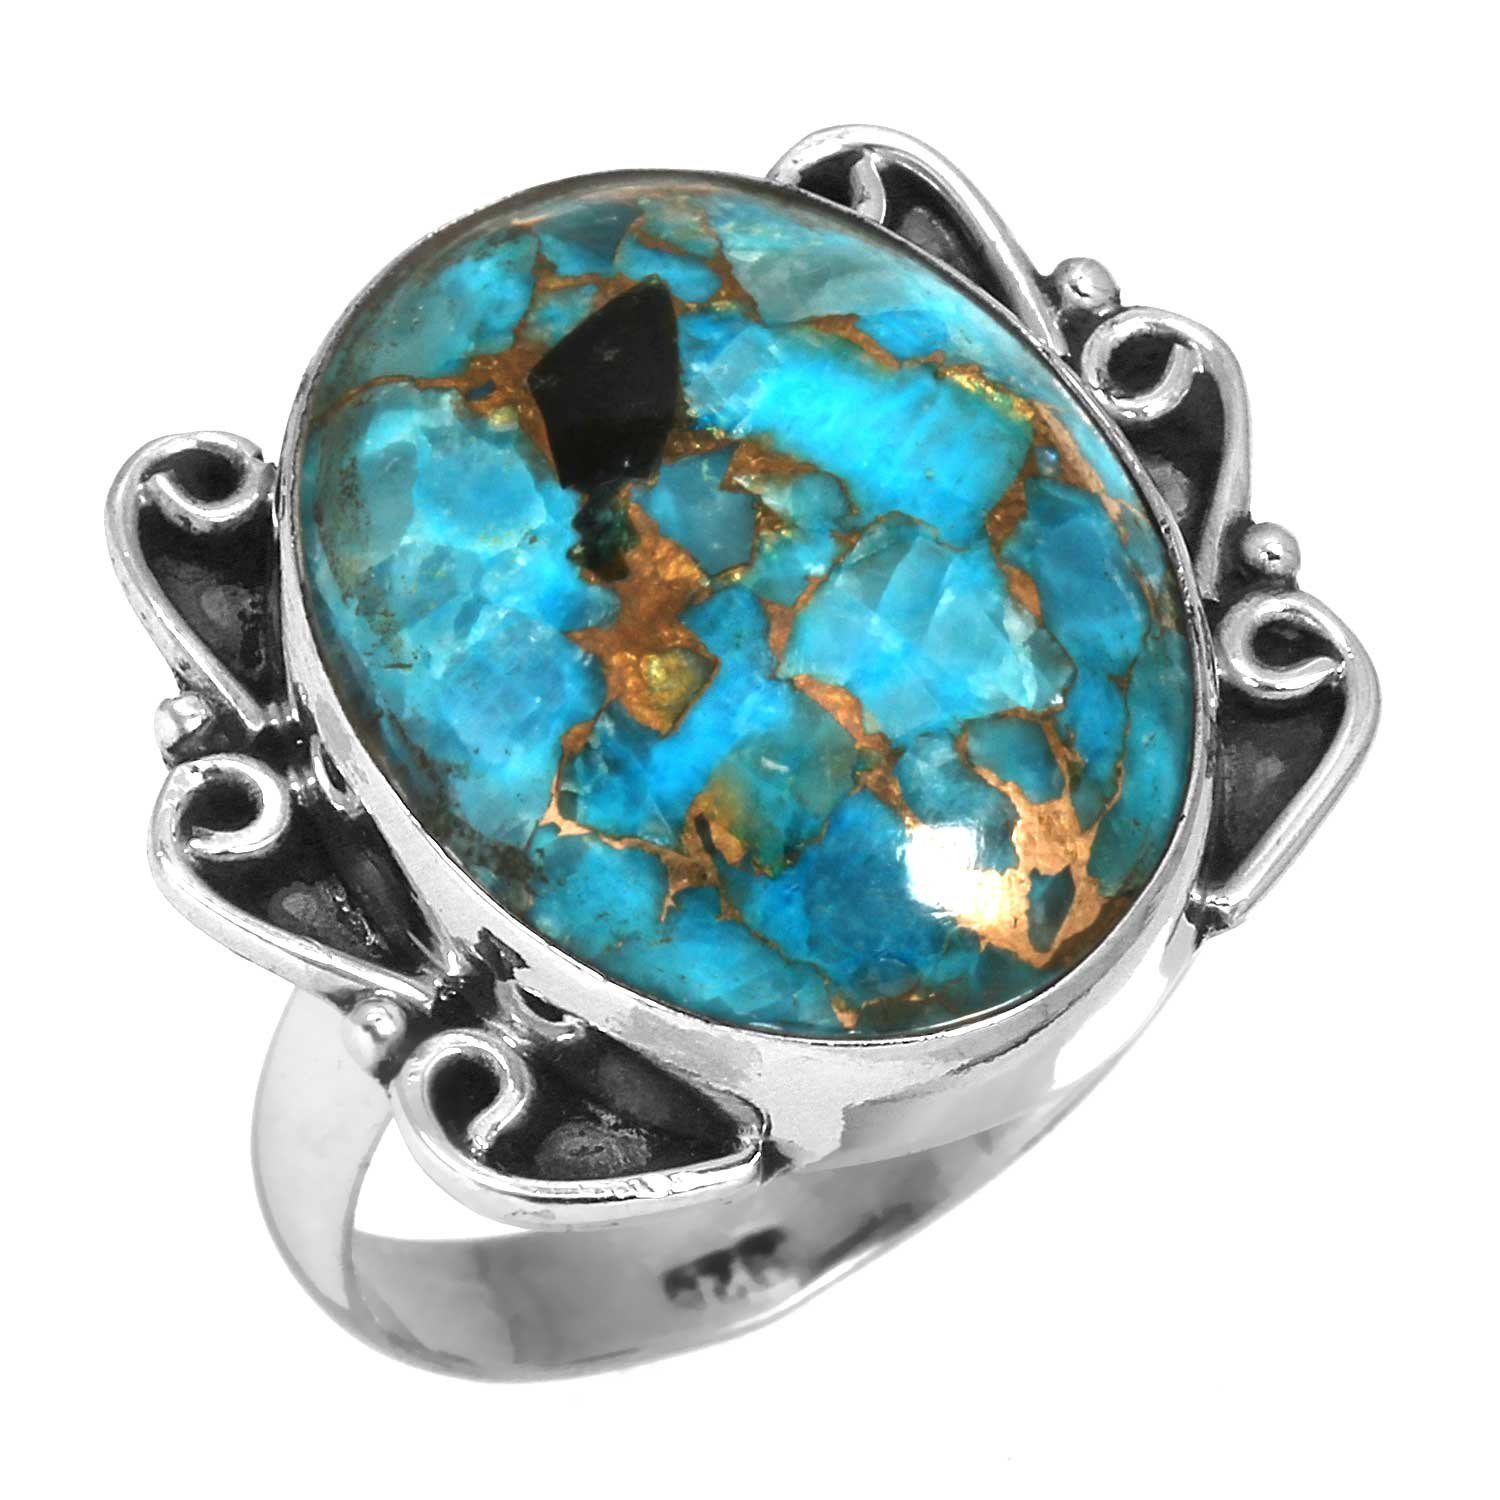 Solid 925 Sterling Silver Jewelry Natural Blue Copper Calcite Ring